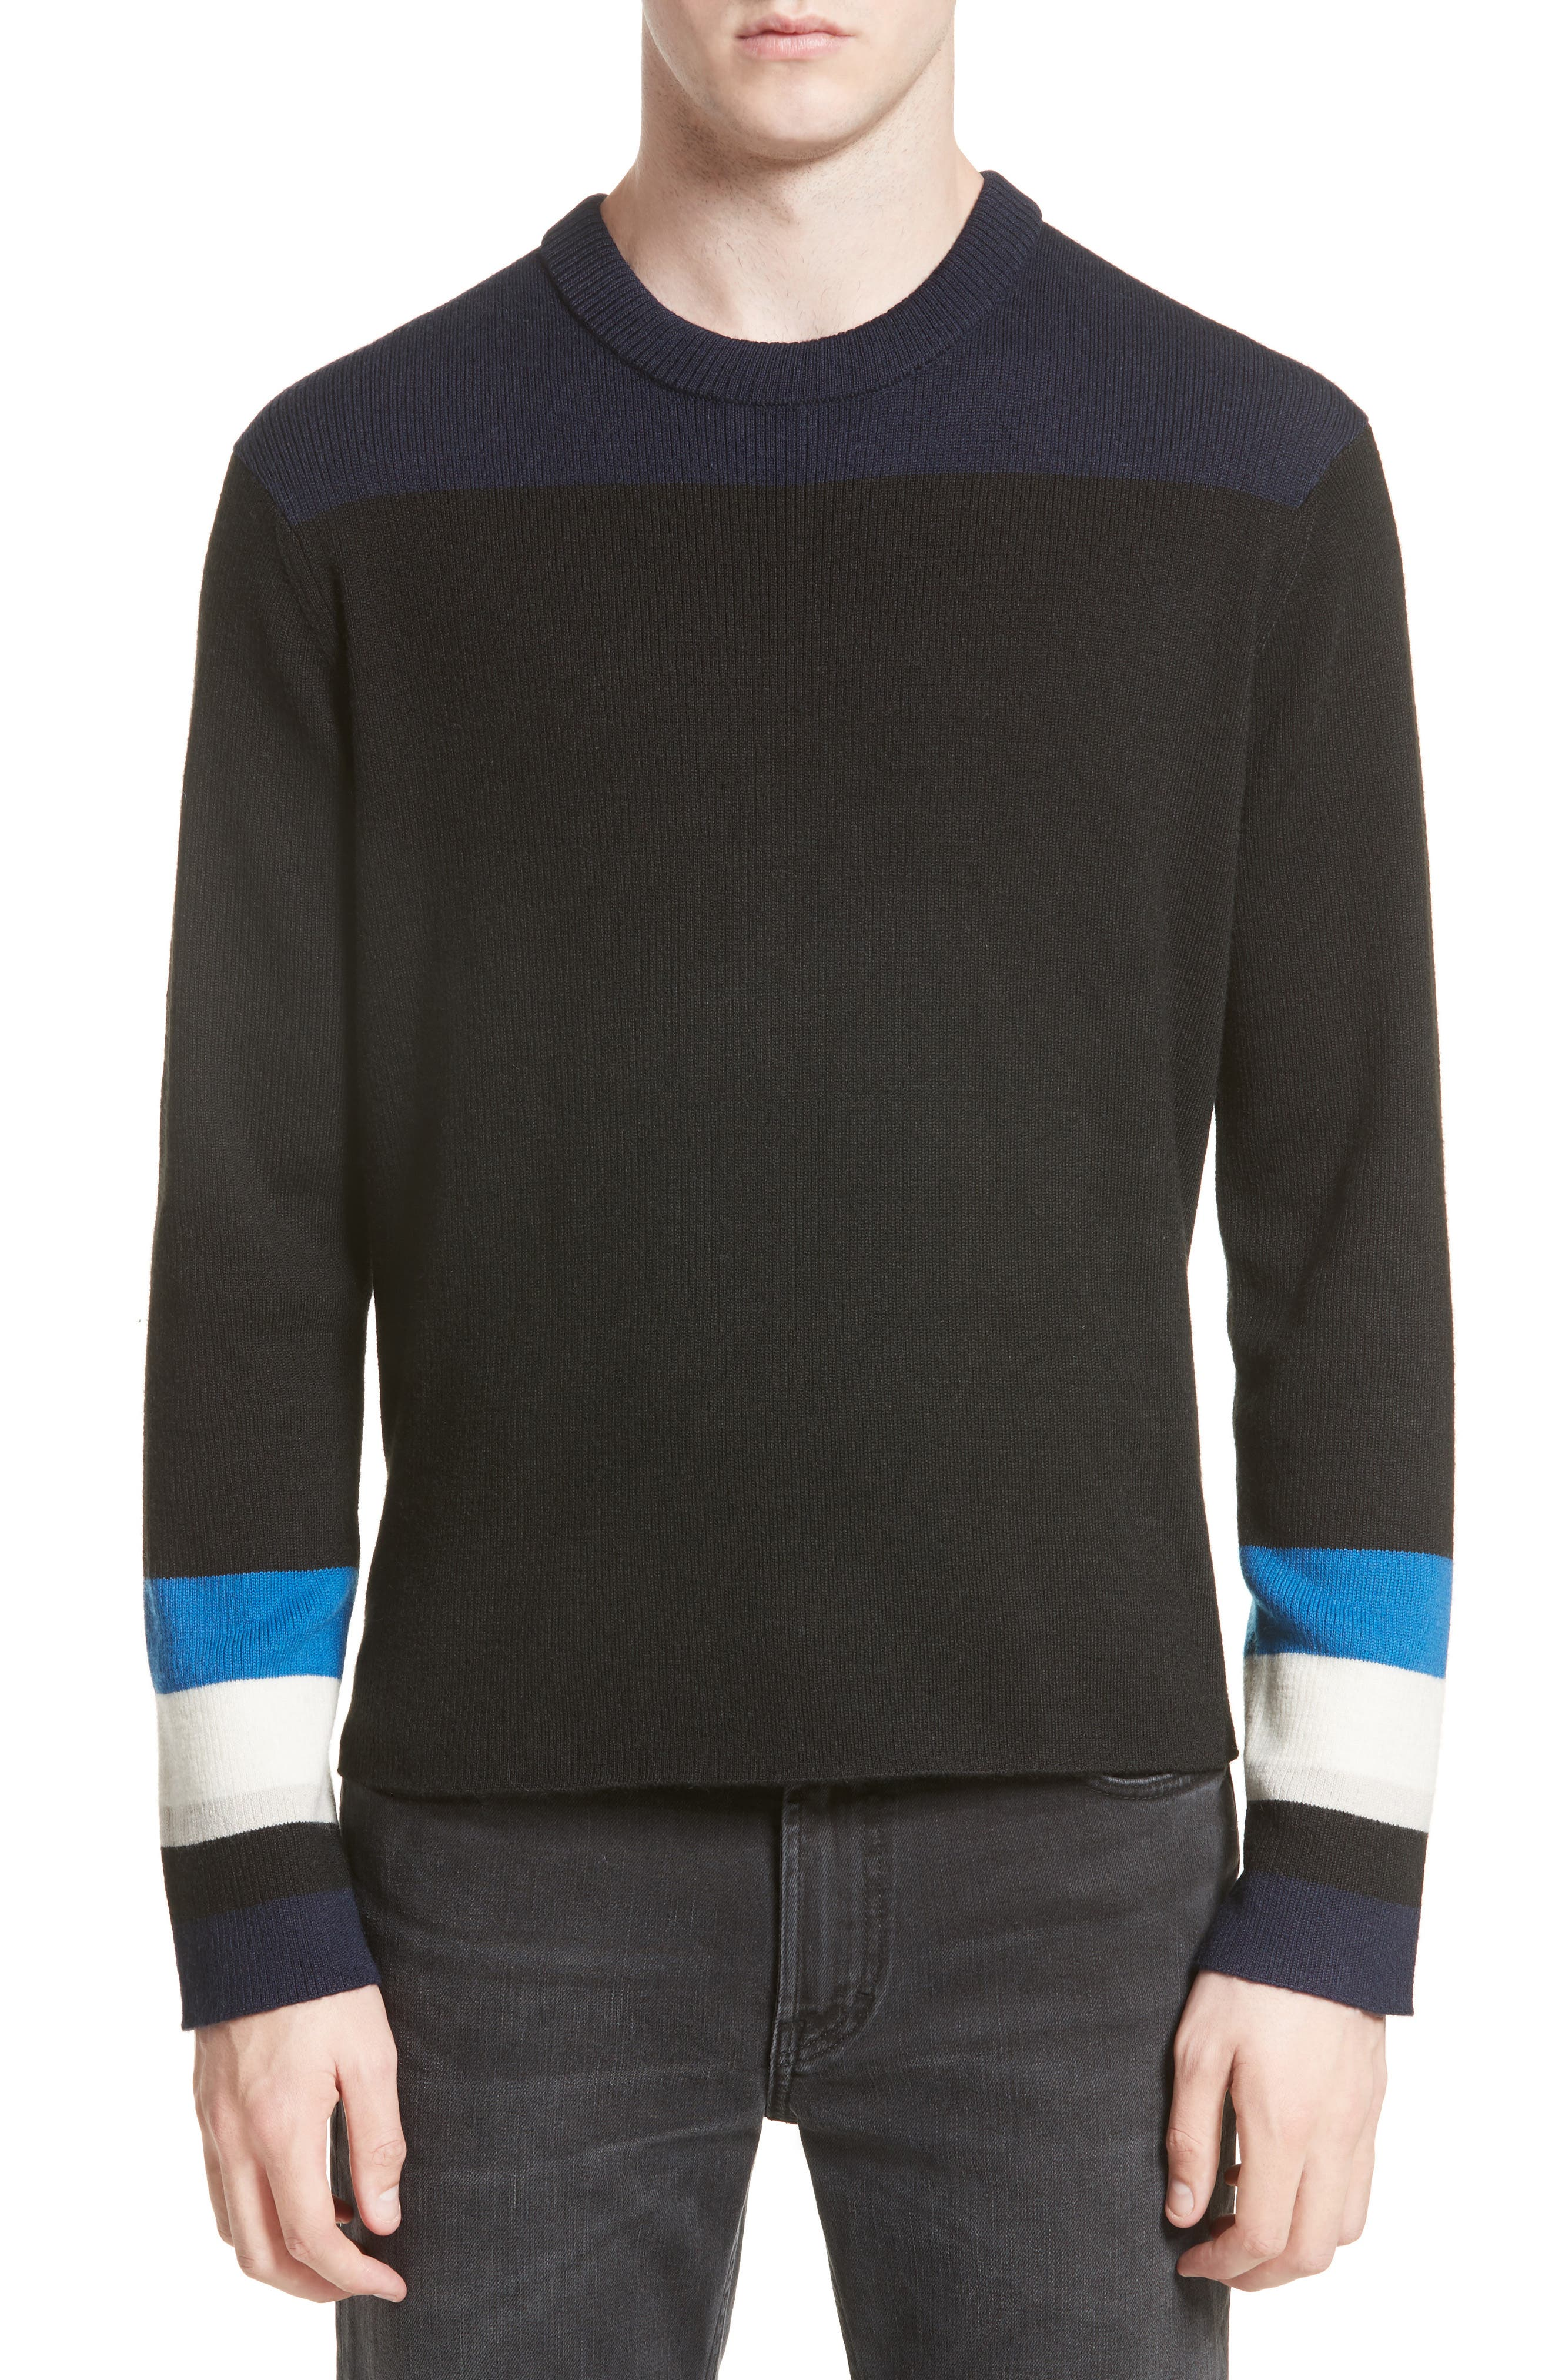 ACNE Studios Nazar Colorblock Sweater